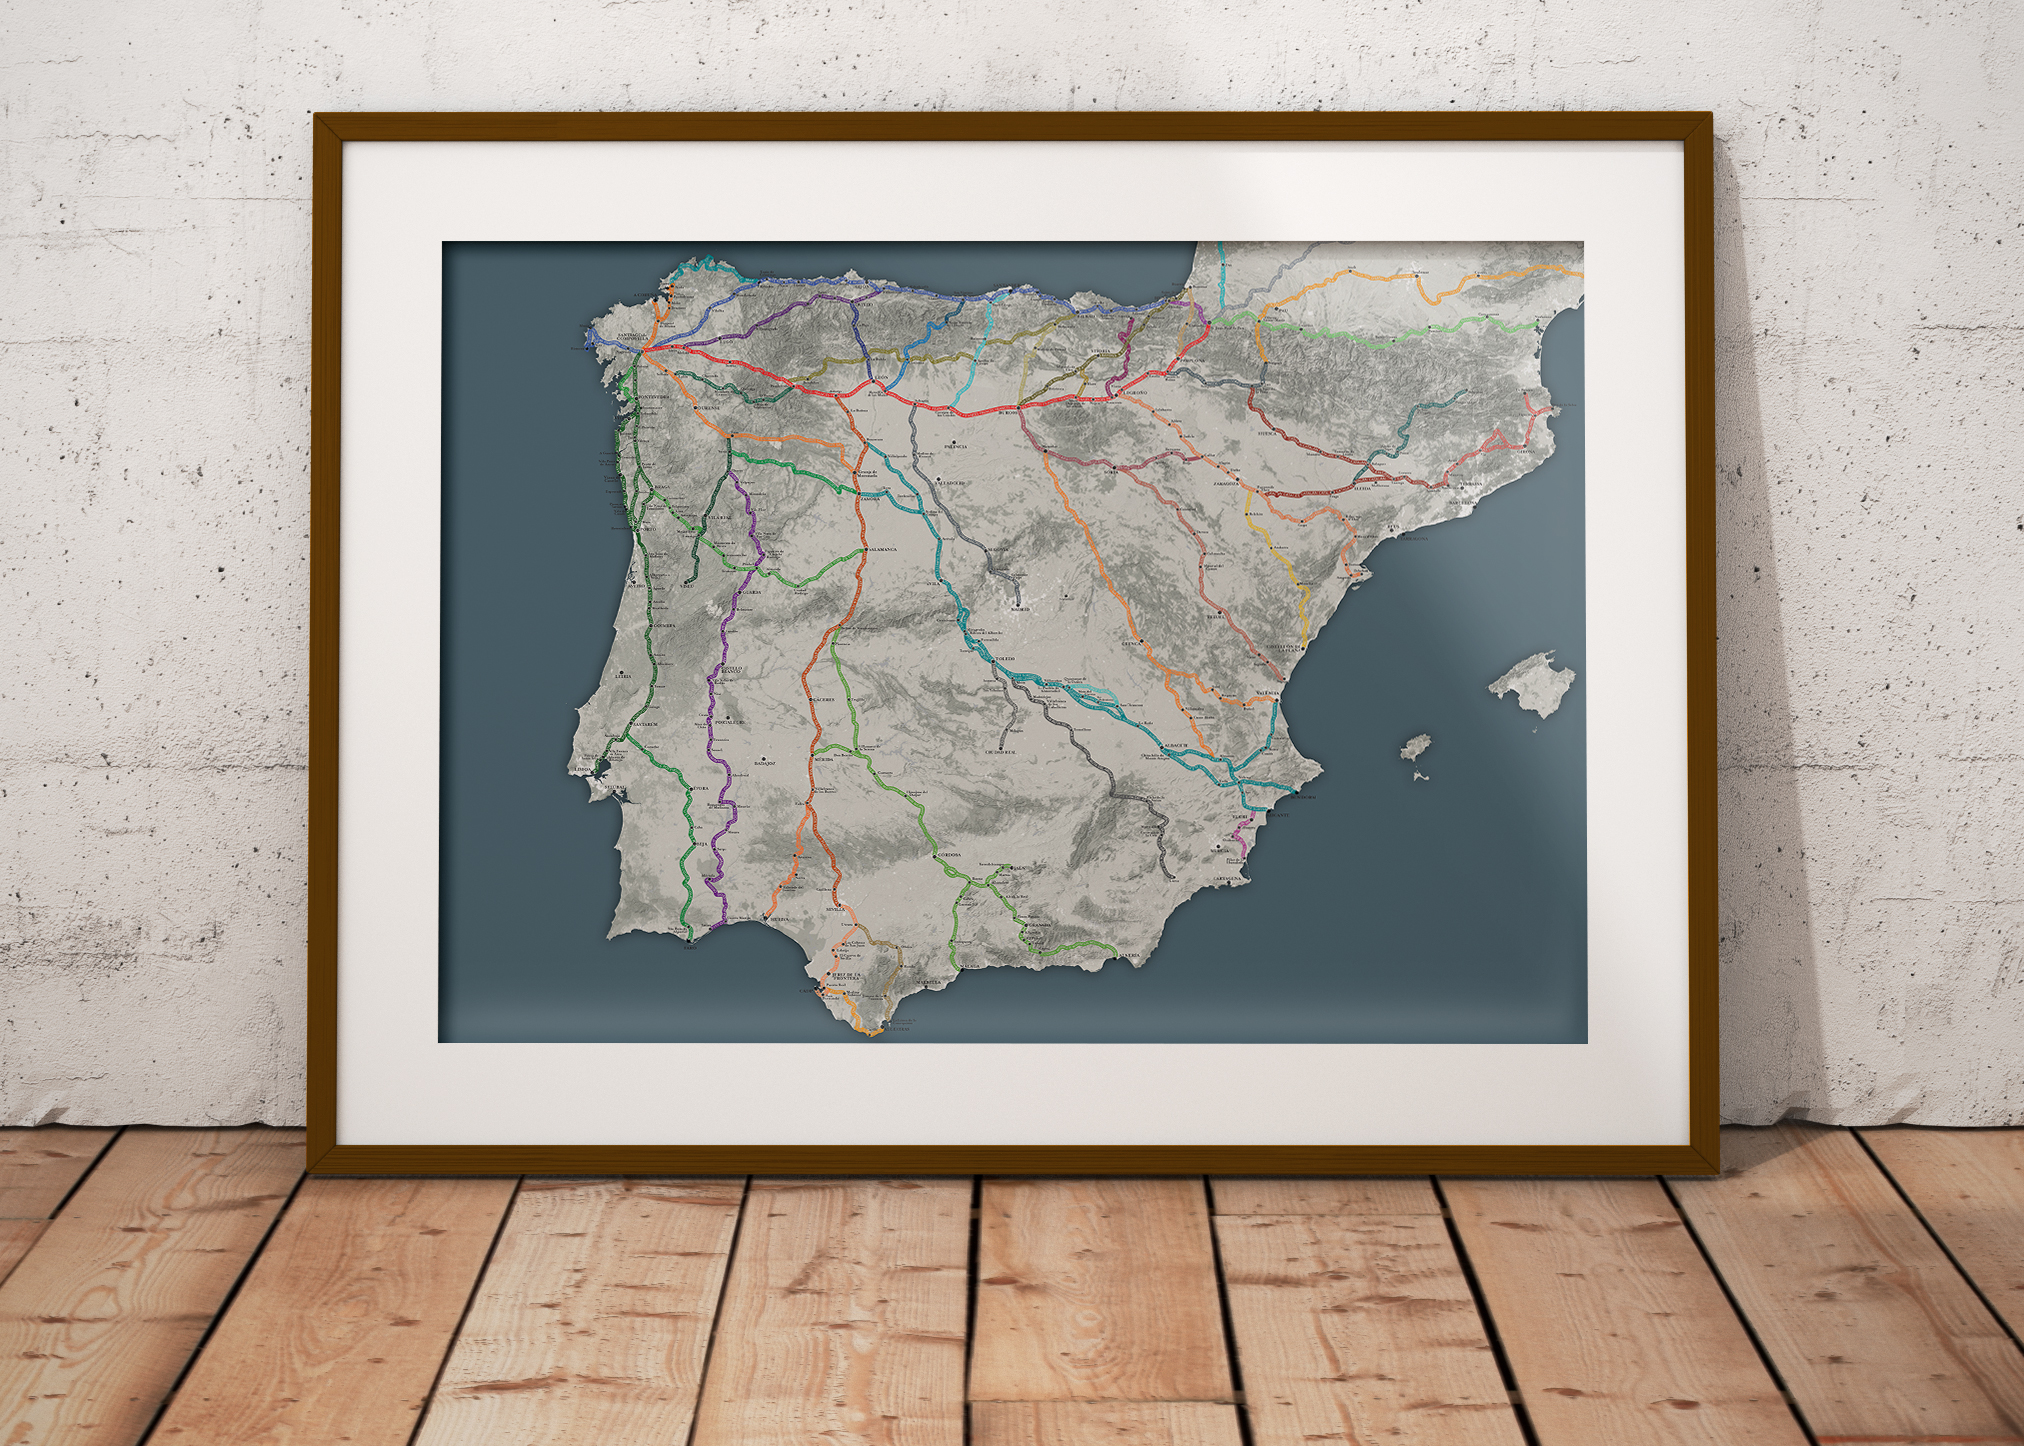 The Big Map of the Camino de Santiago   Wise Pilgrim Guidebooks for     The Big Map of the Camino de Santiago